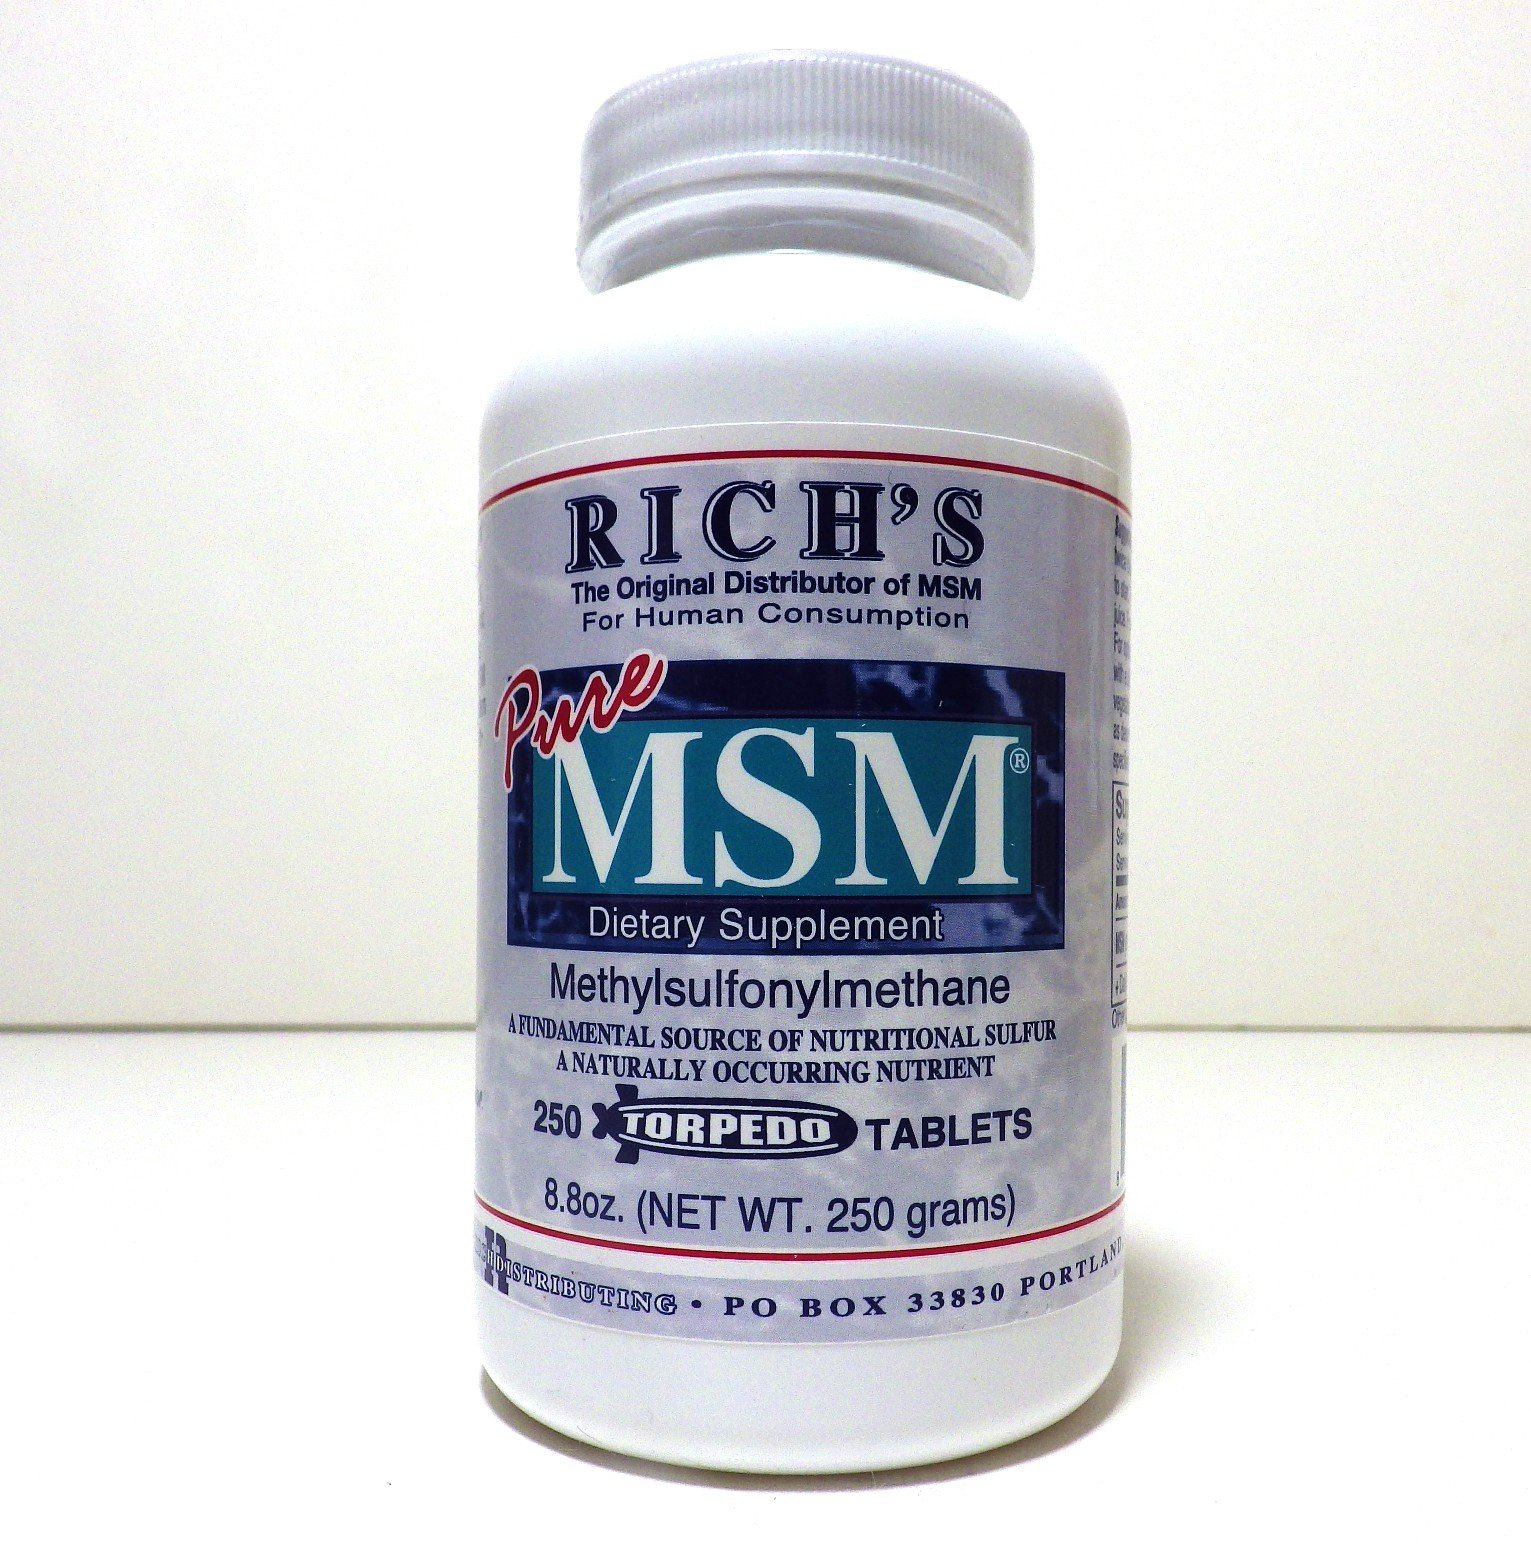 Rich's Pure MSM (Methylsulfonylmethane) 1000 mg 250 Tablets